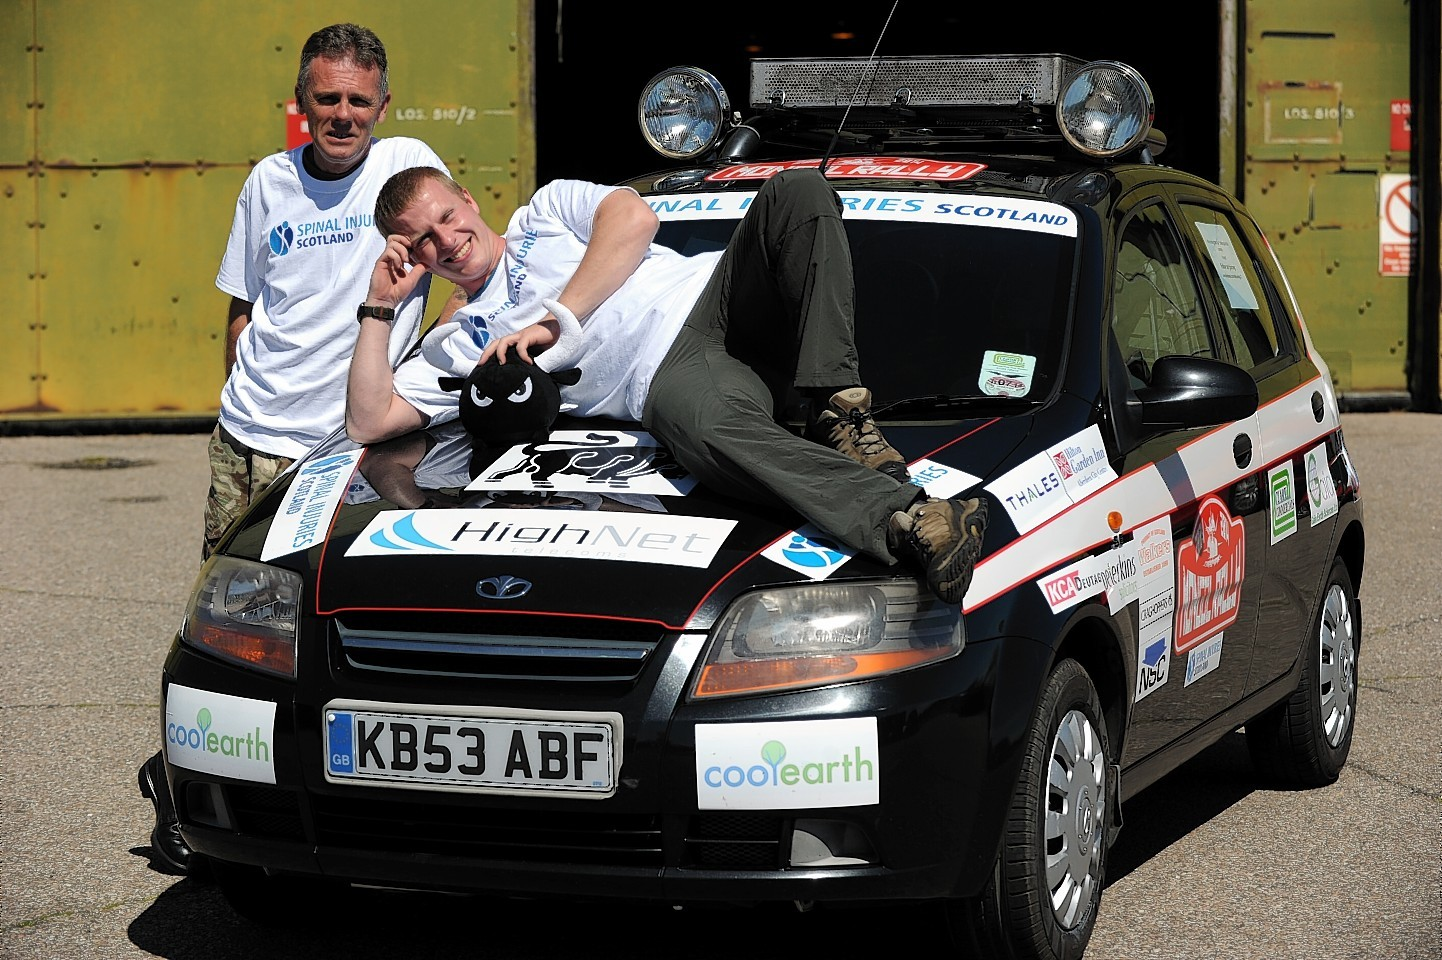 Squaddies set off on the Mongol Rally